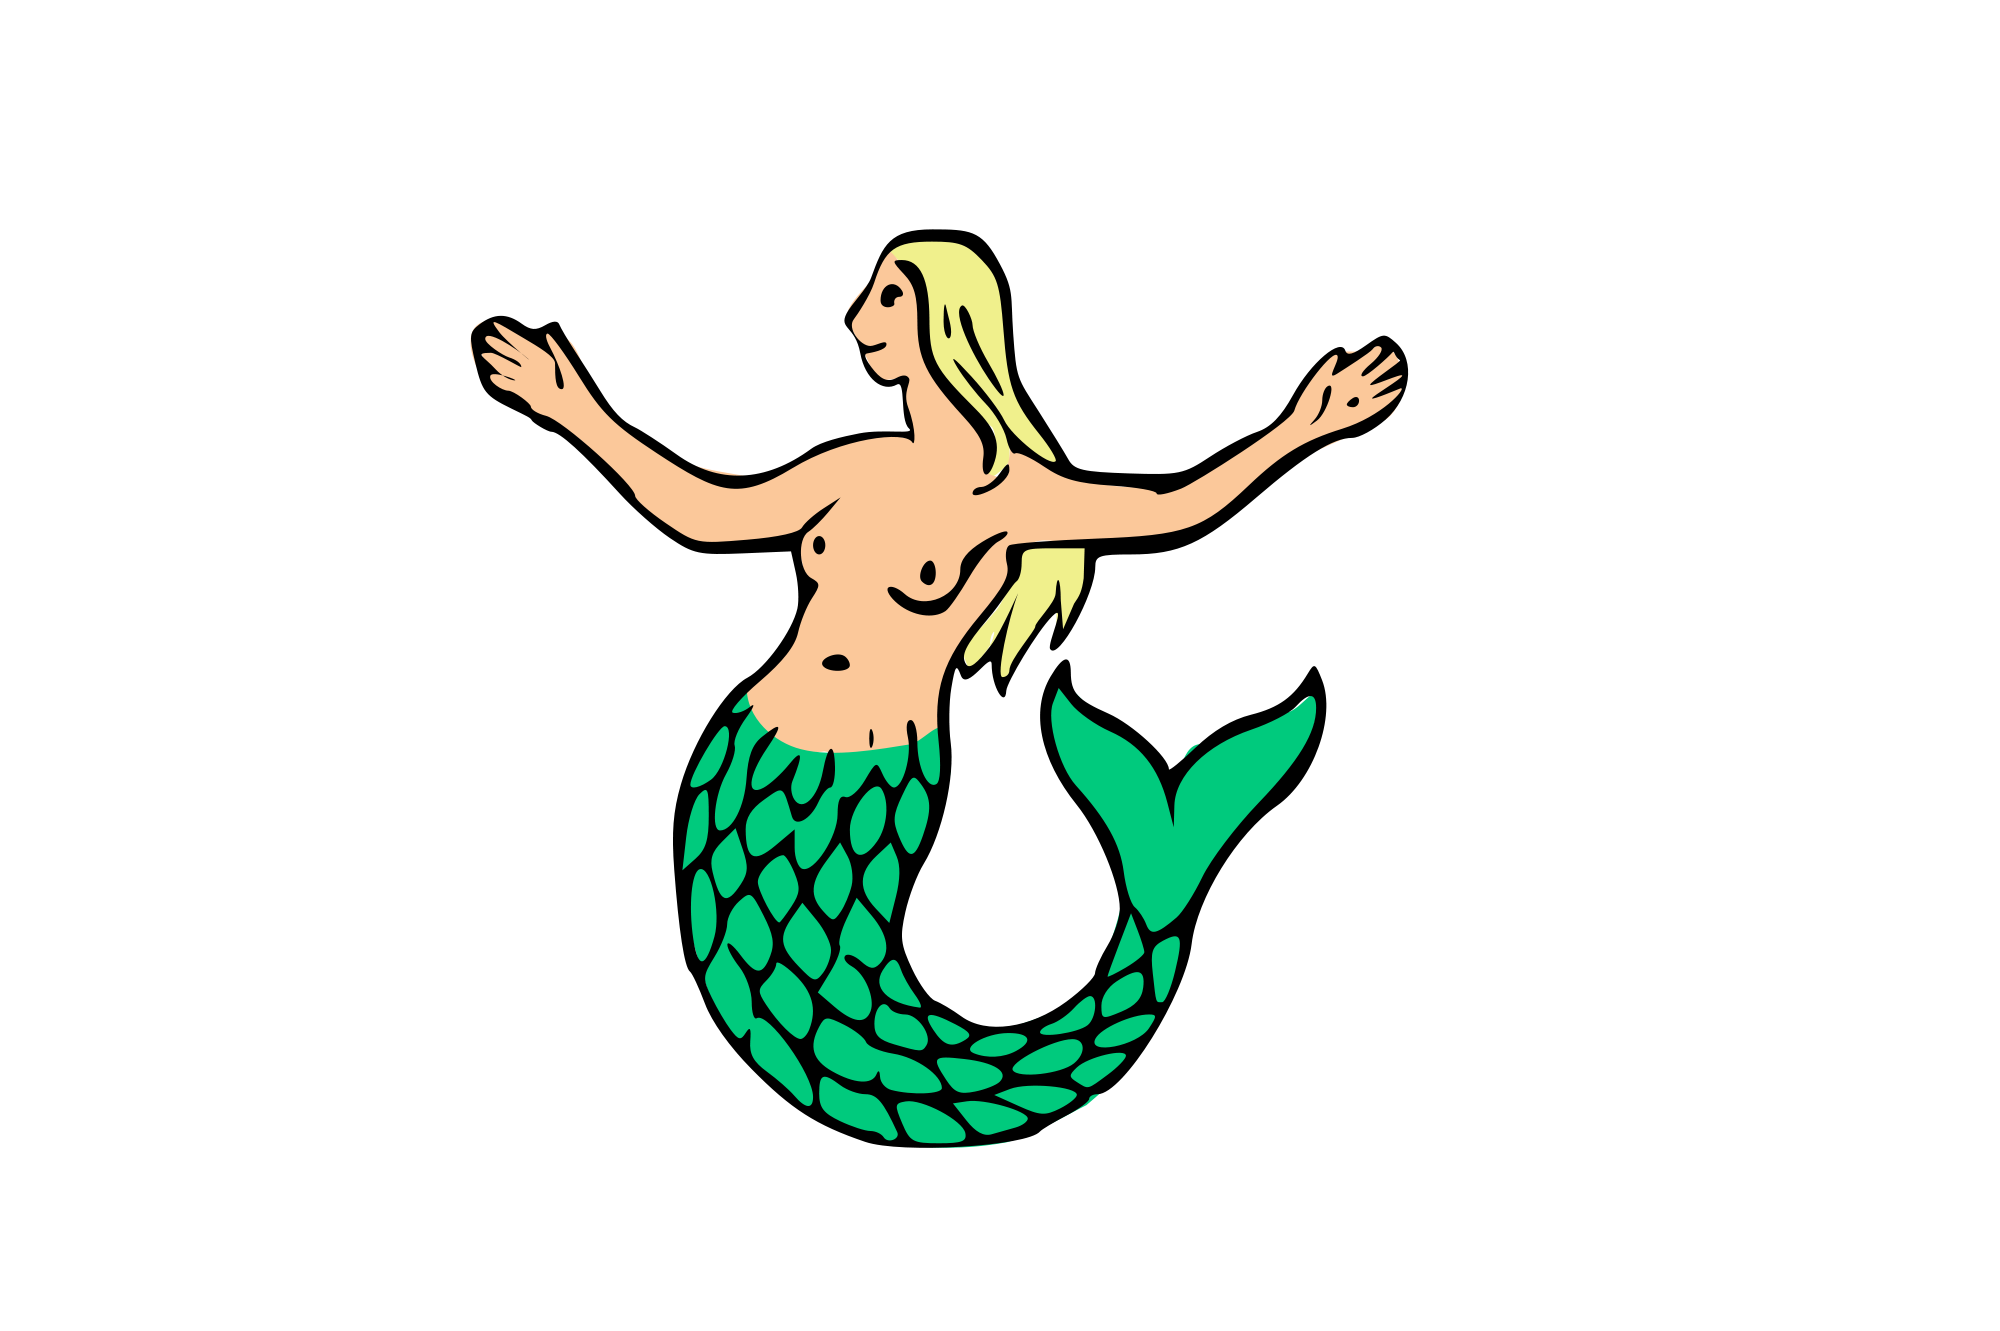 File element wikimedia commons. Svg mermaid free stock